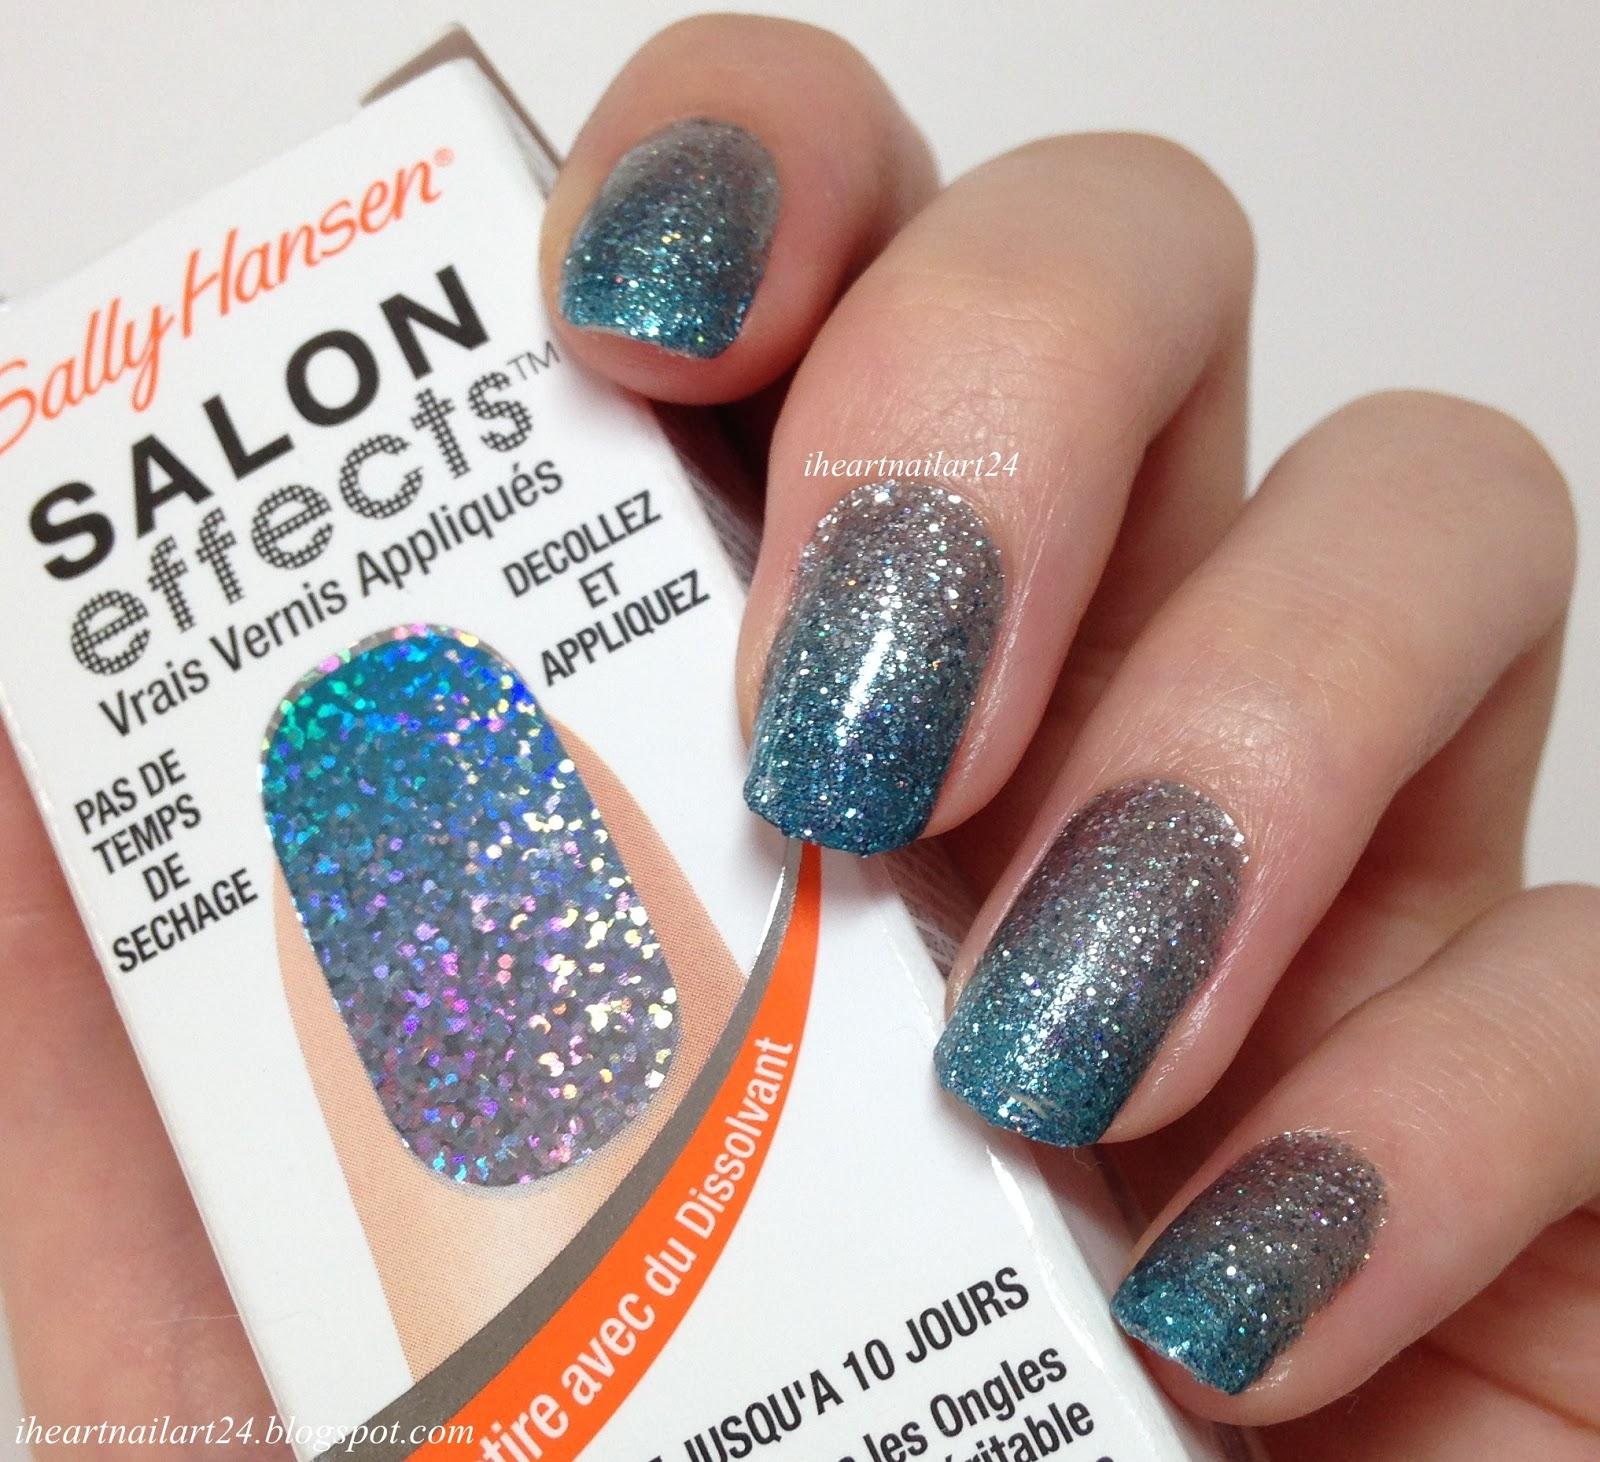 Sally Hansen Salon Effects Real Nail Polish Strips Review | I Heart ...